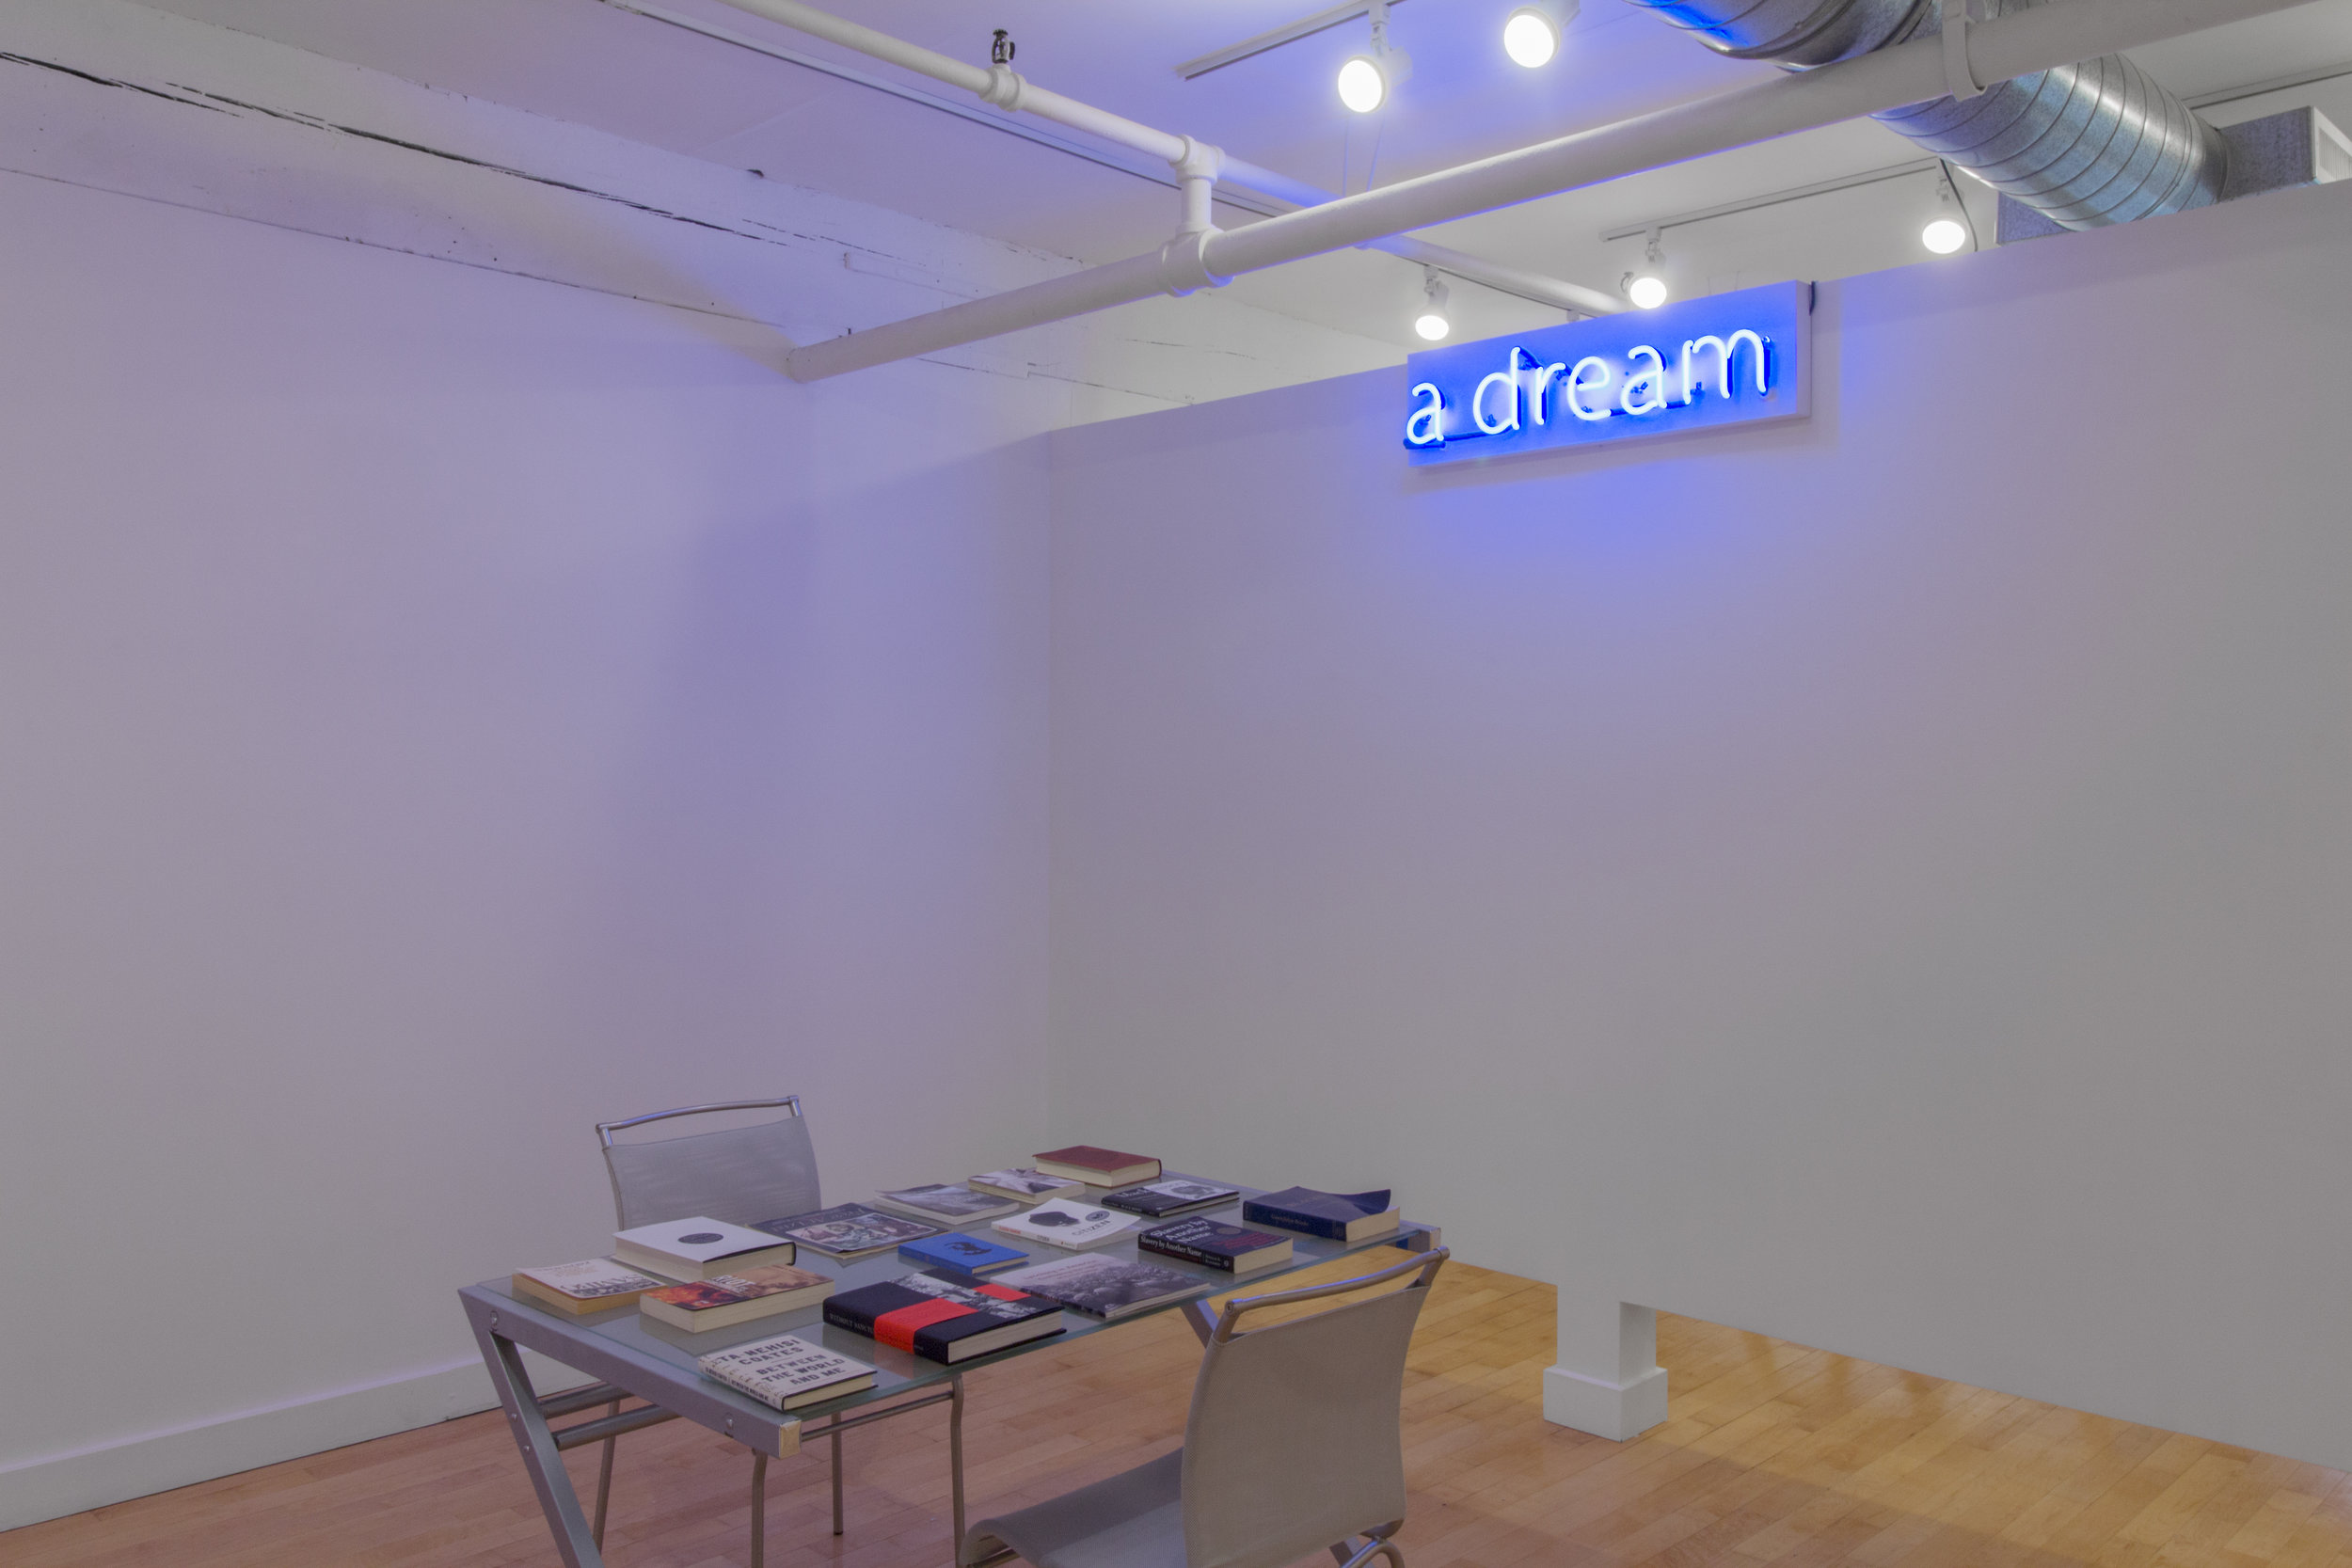 locke_family-pictures_install-view-5_a-dream